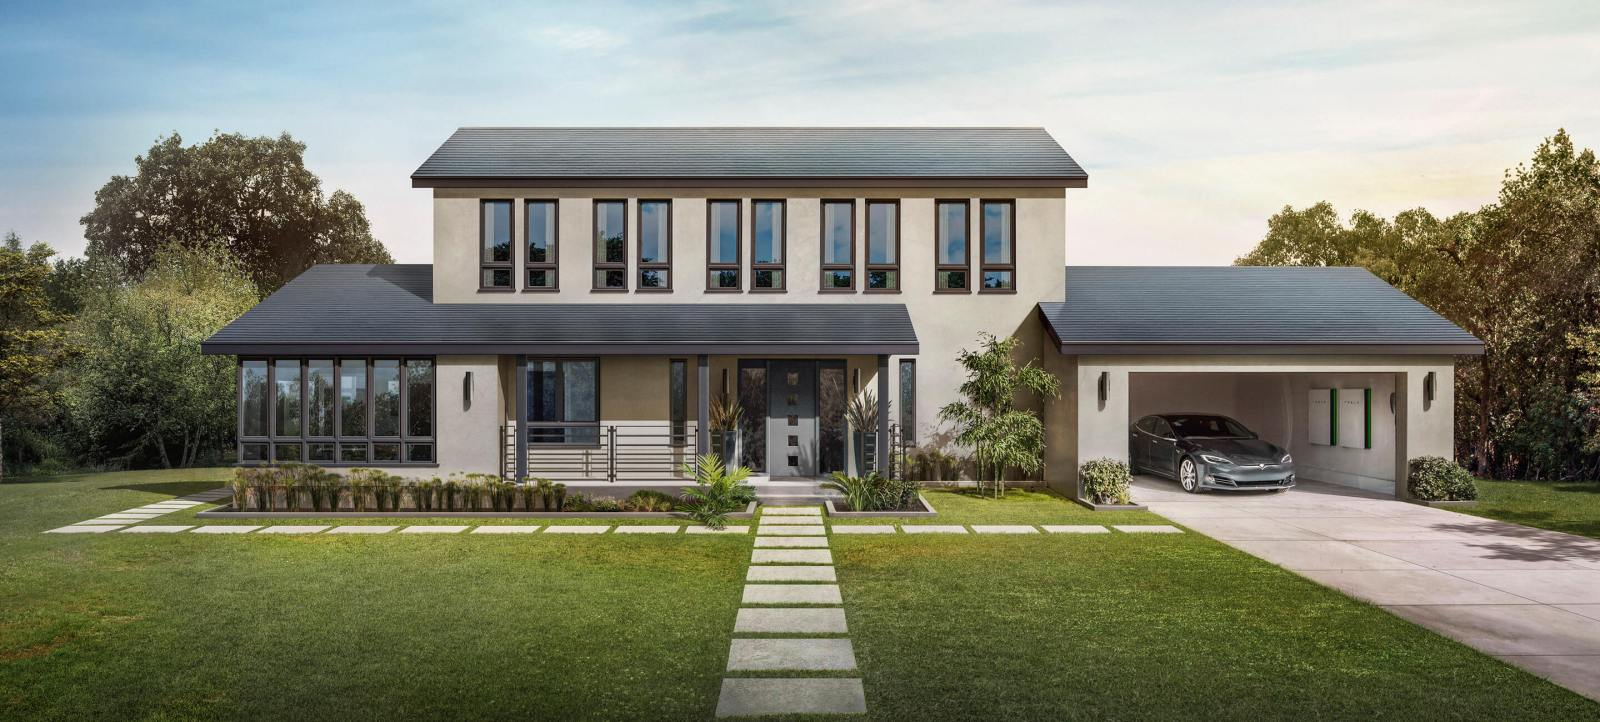 Tesla's solar roof tiles get approved for permitting and installations